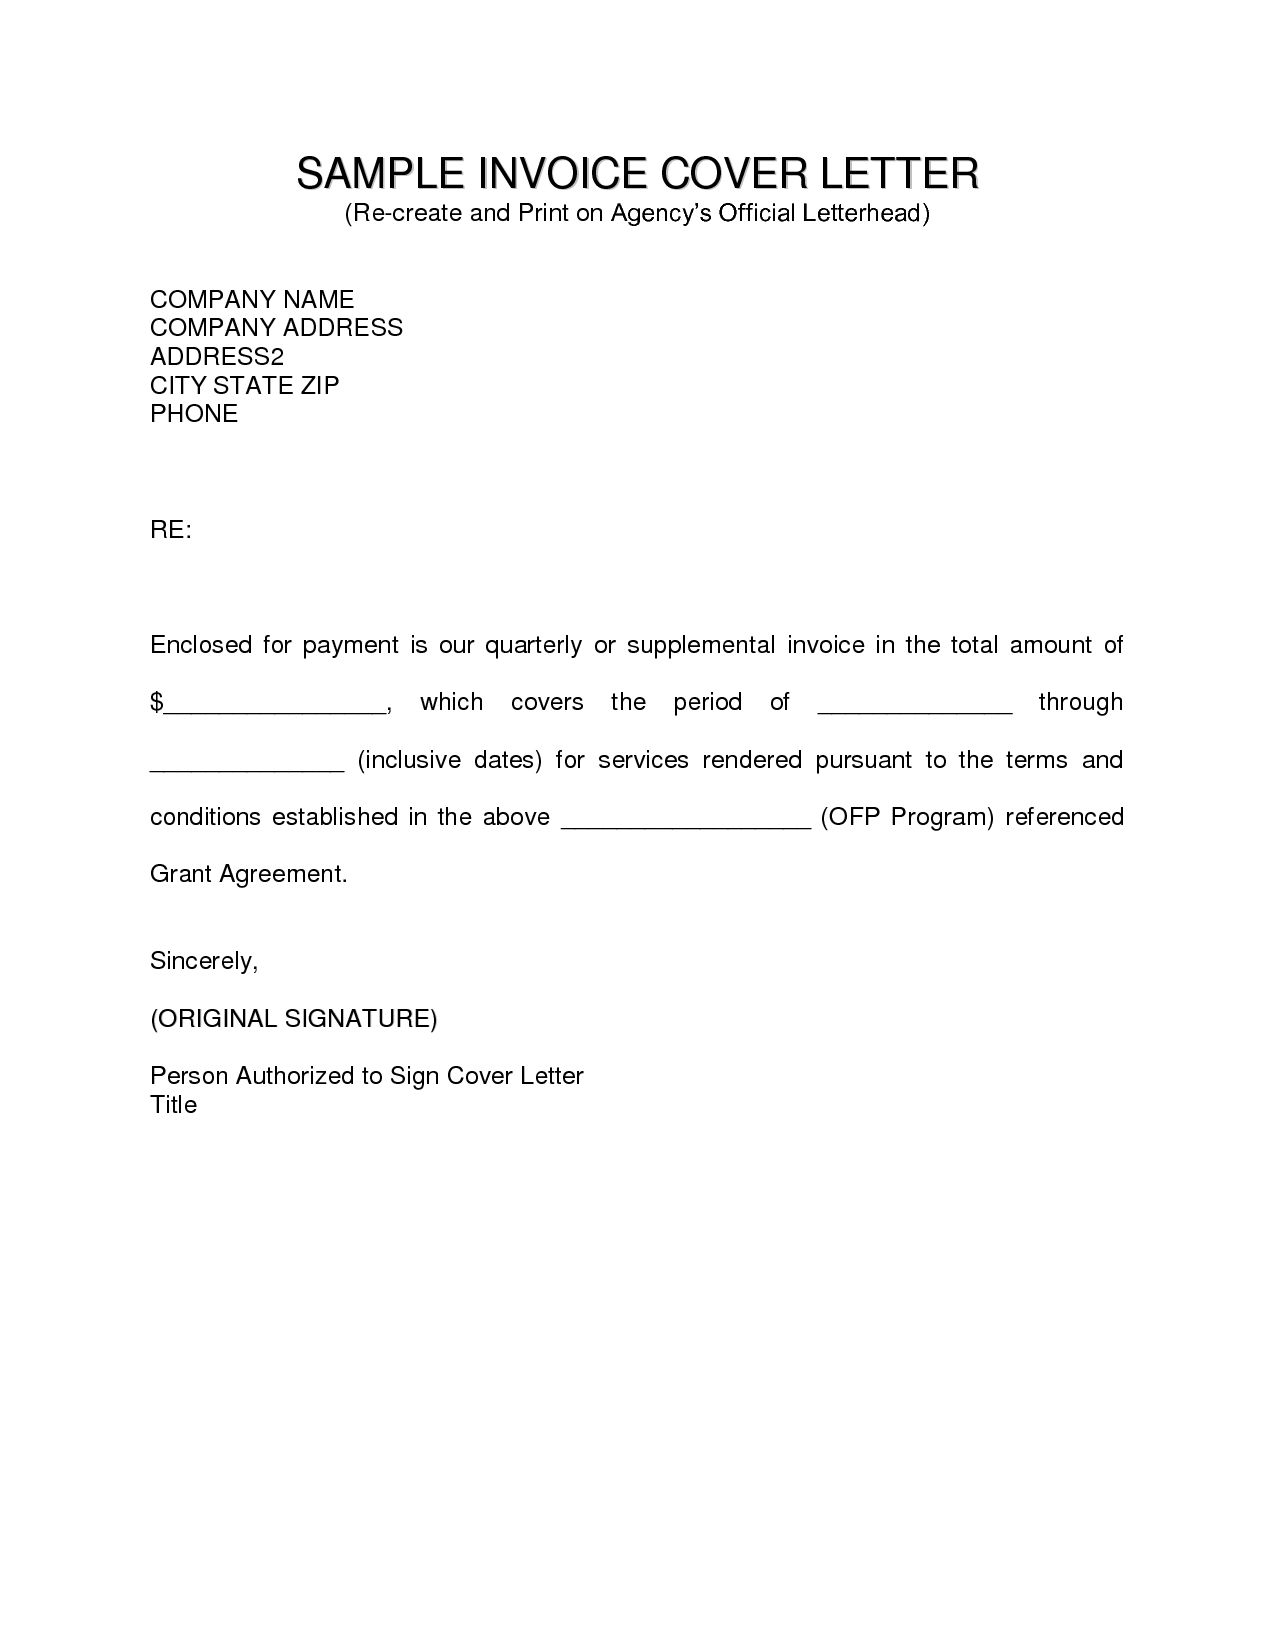 sample invoice letter letter to customer invoice attached template sample form sample invoice cover letter sample invoice letter 9 examples in pdf word - Example Of Invoice